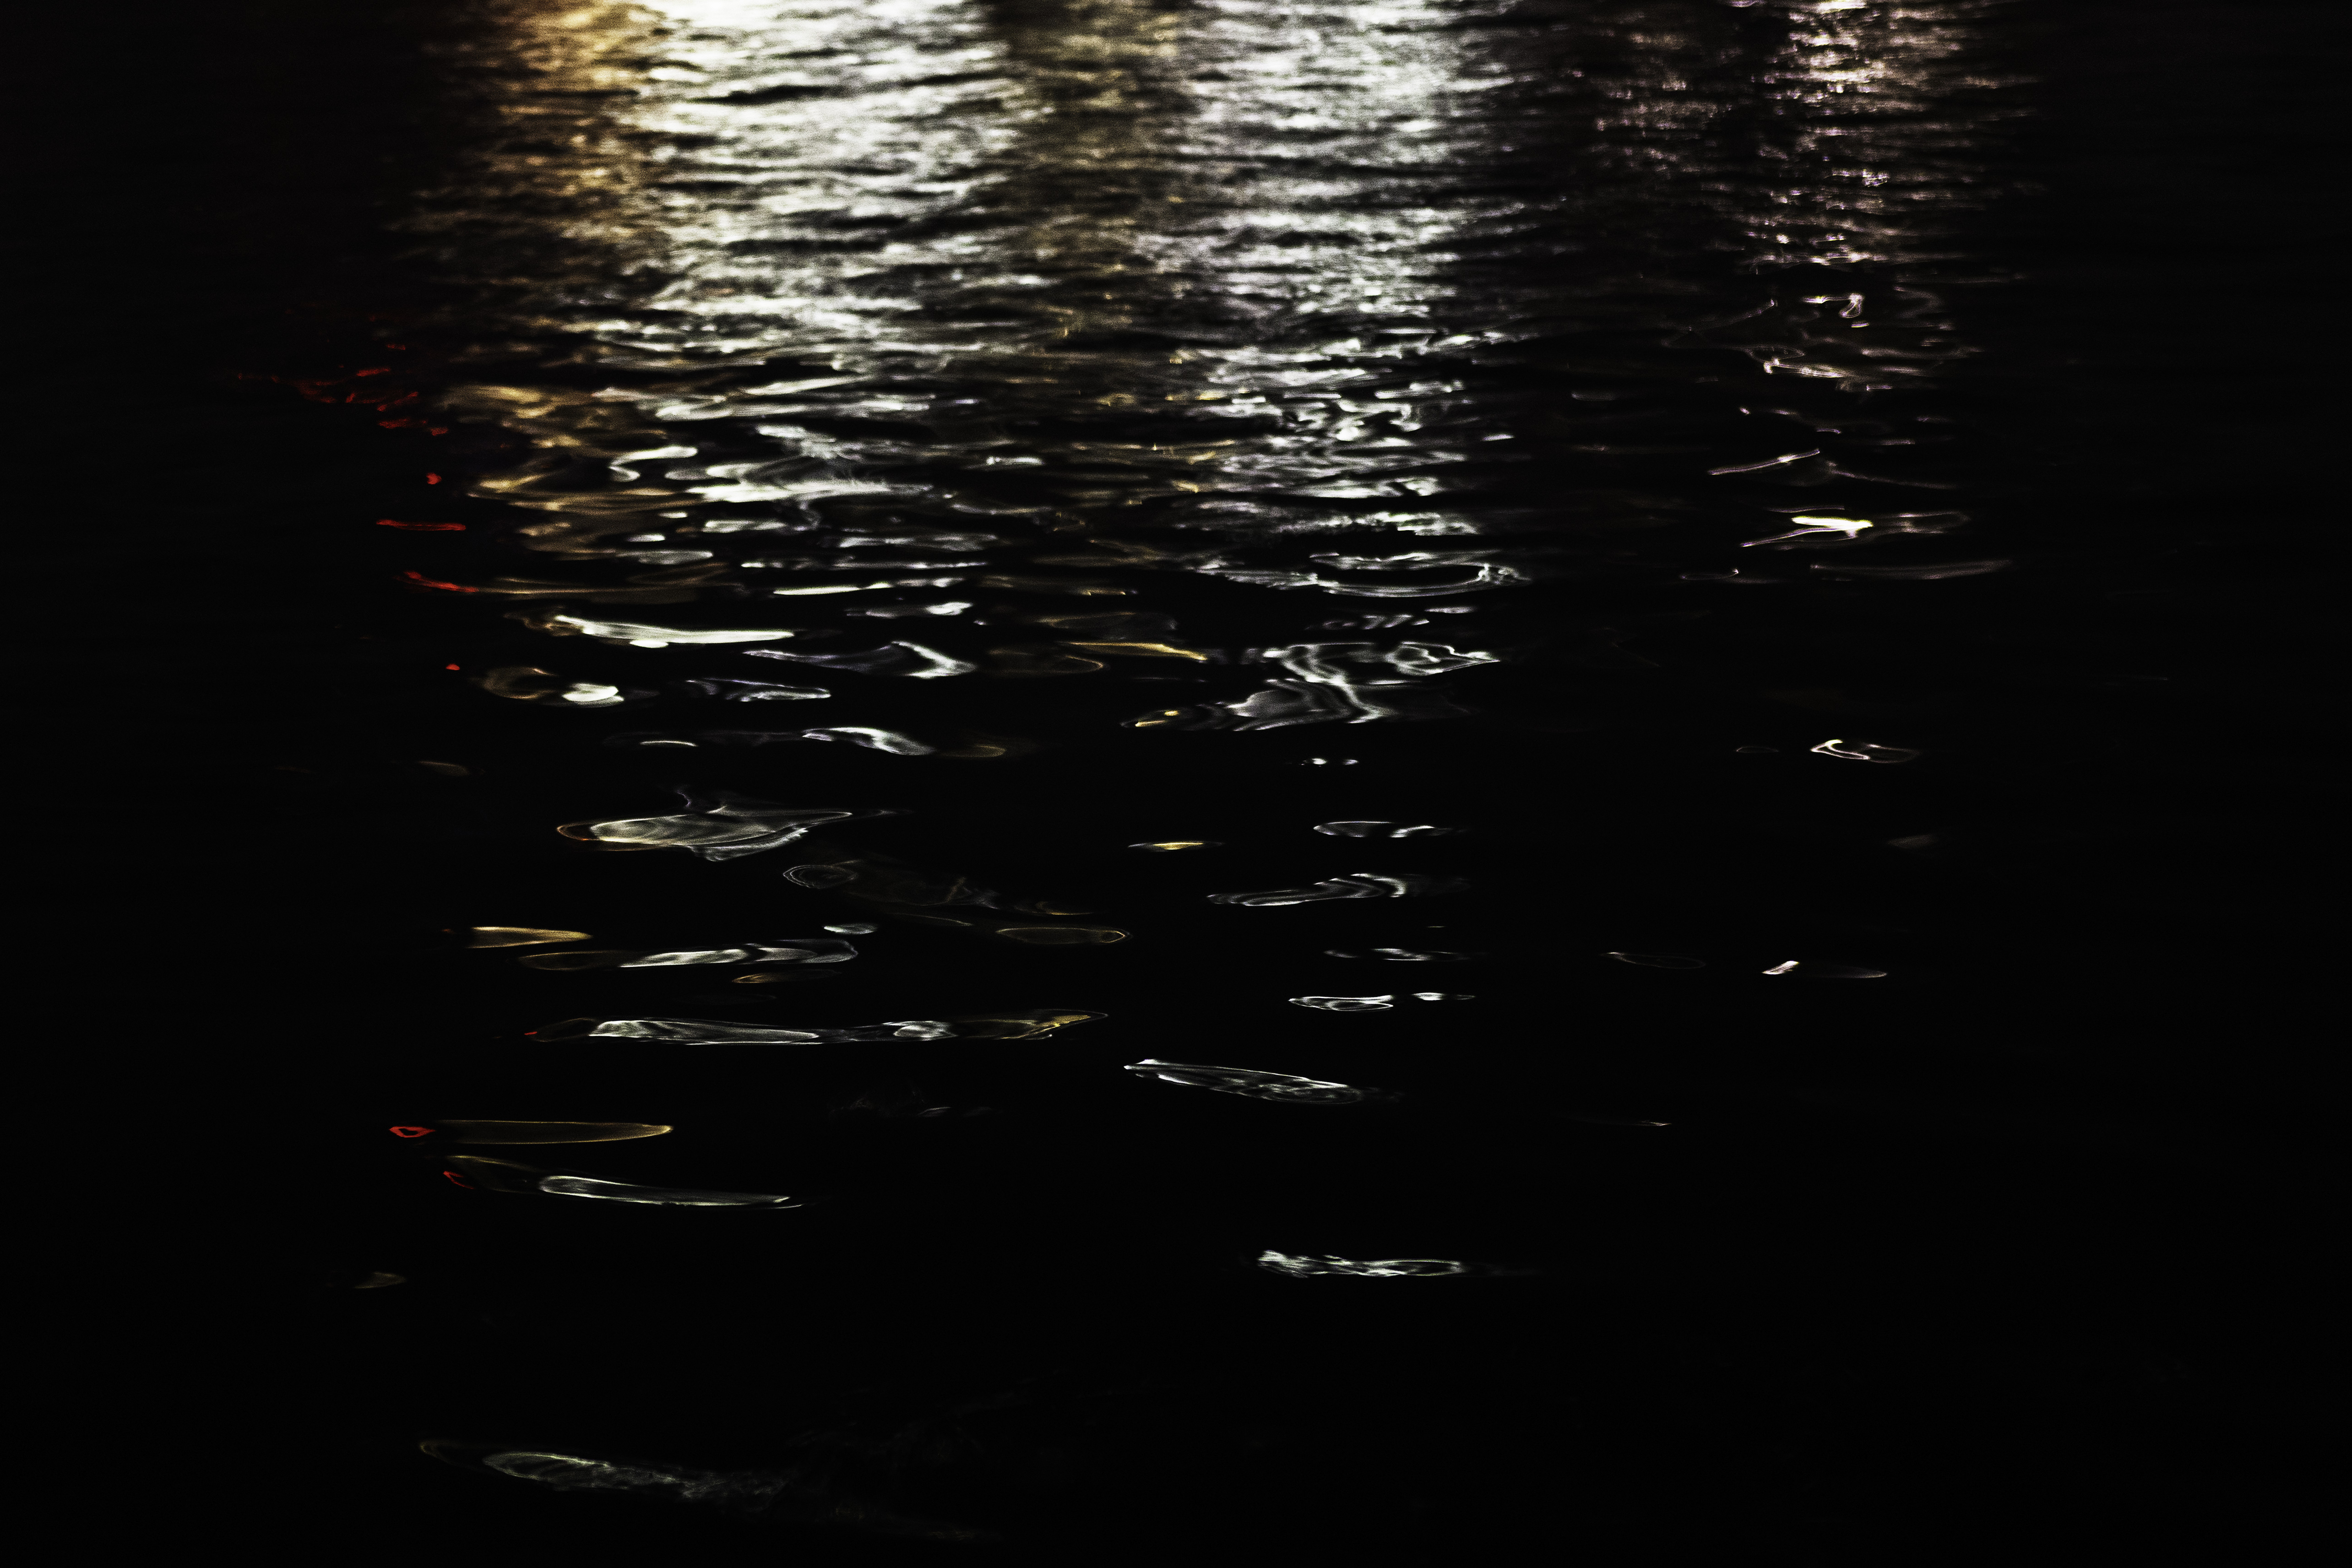 White, amber, and red lights bounce off of pitch-black water.